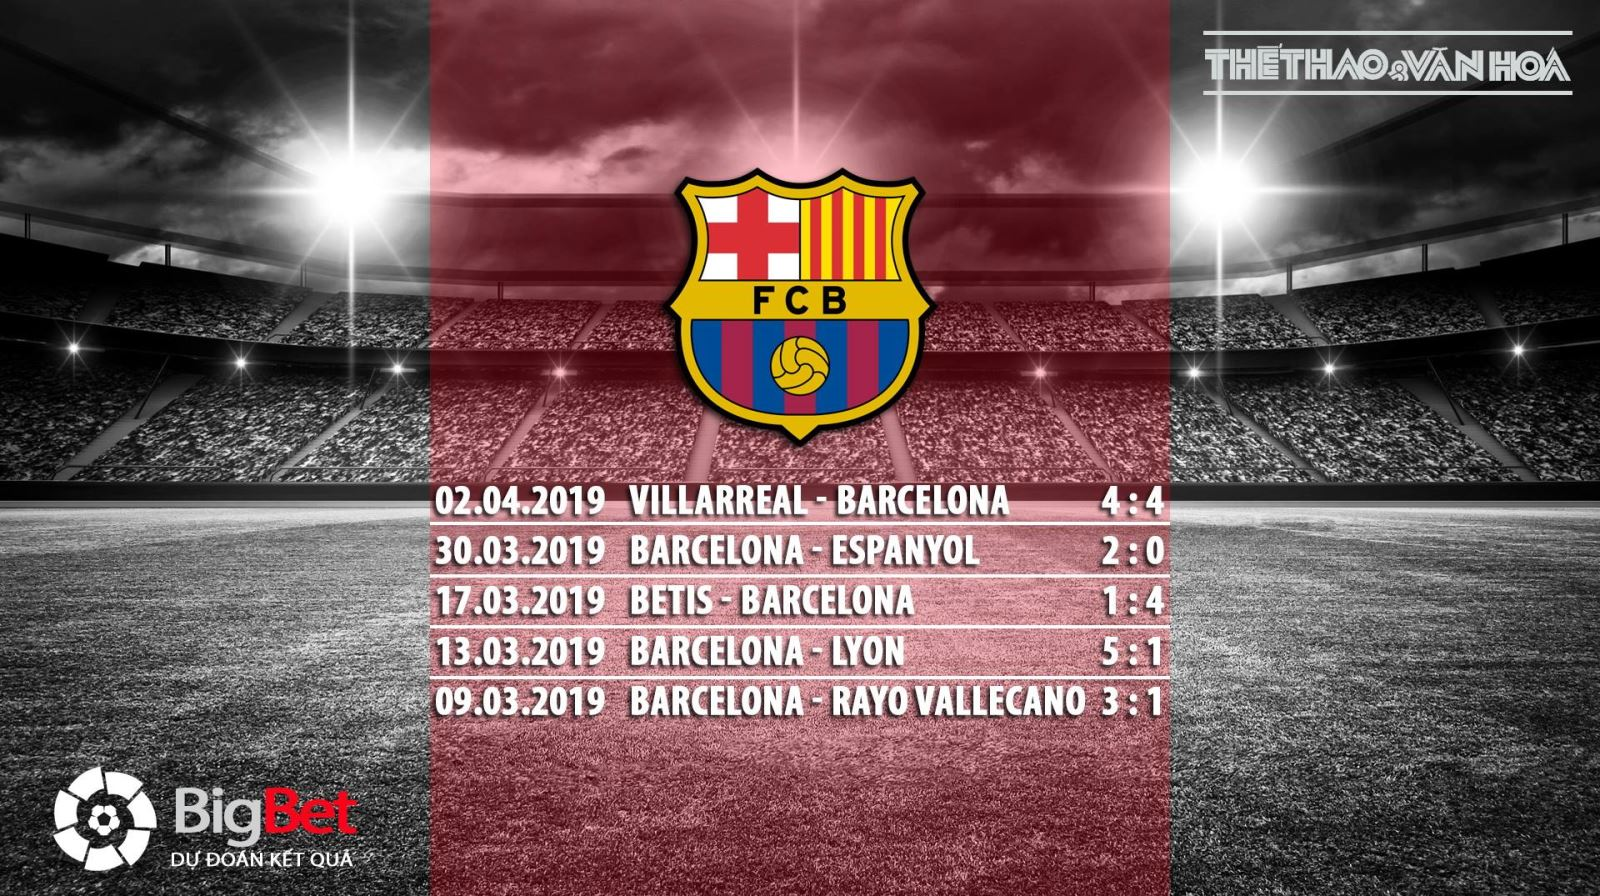 Nhận định Barcelona vs Atletico Madrid, dự đoán Barcelona vs Atletico Madrid, tỷ lệ Barcelona vs Atletico Madrid, soi kèo Barcelona vs Atletico Madrid, Barcelona vs Atletico Madrid